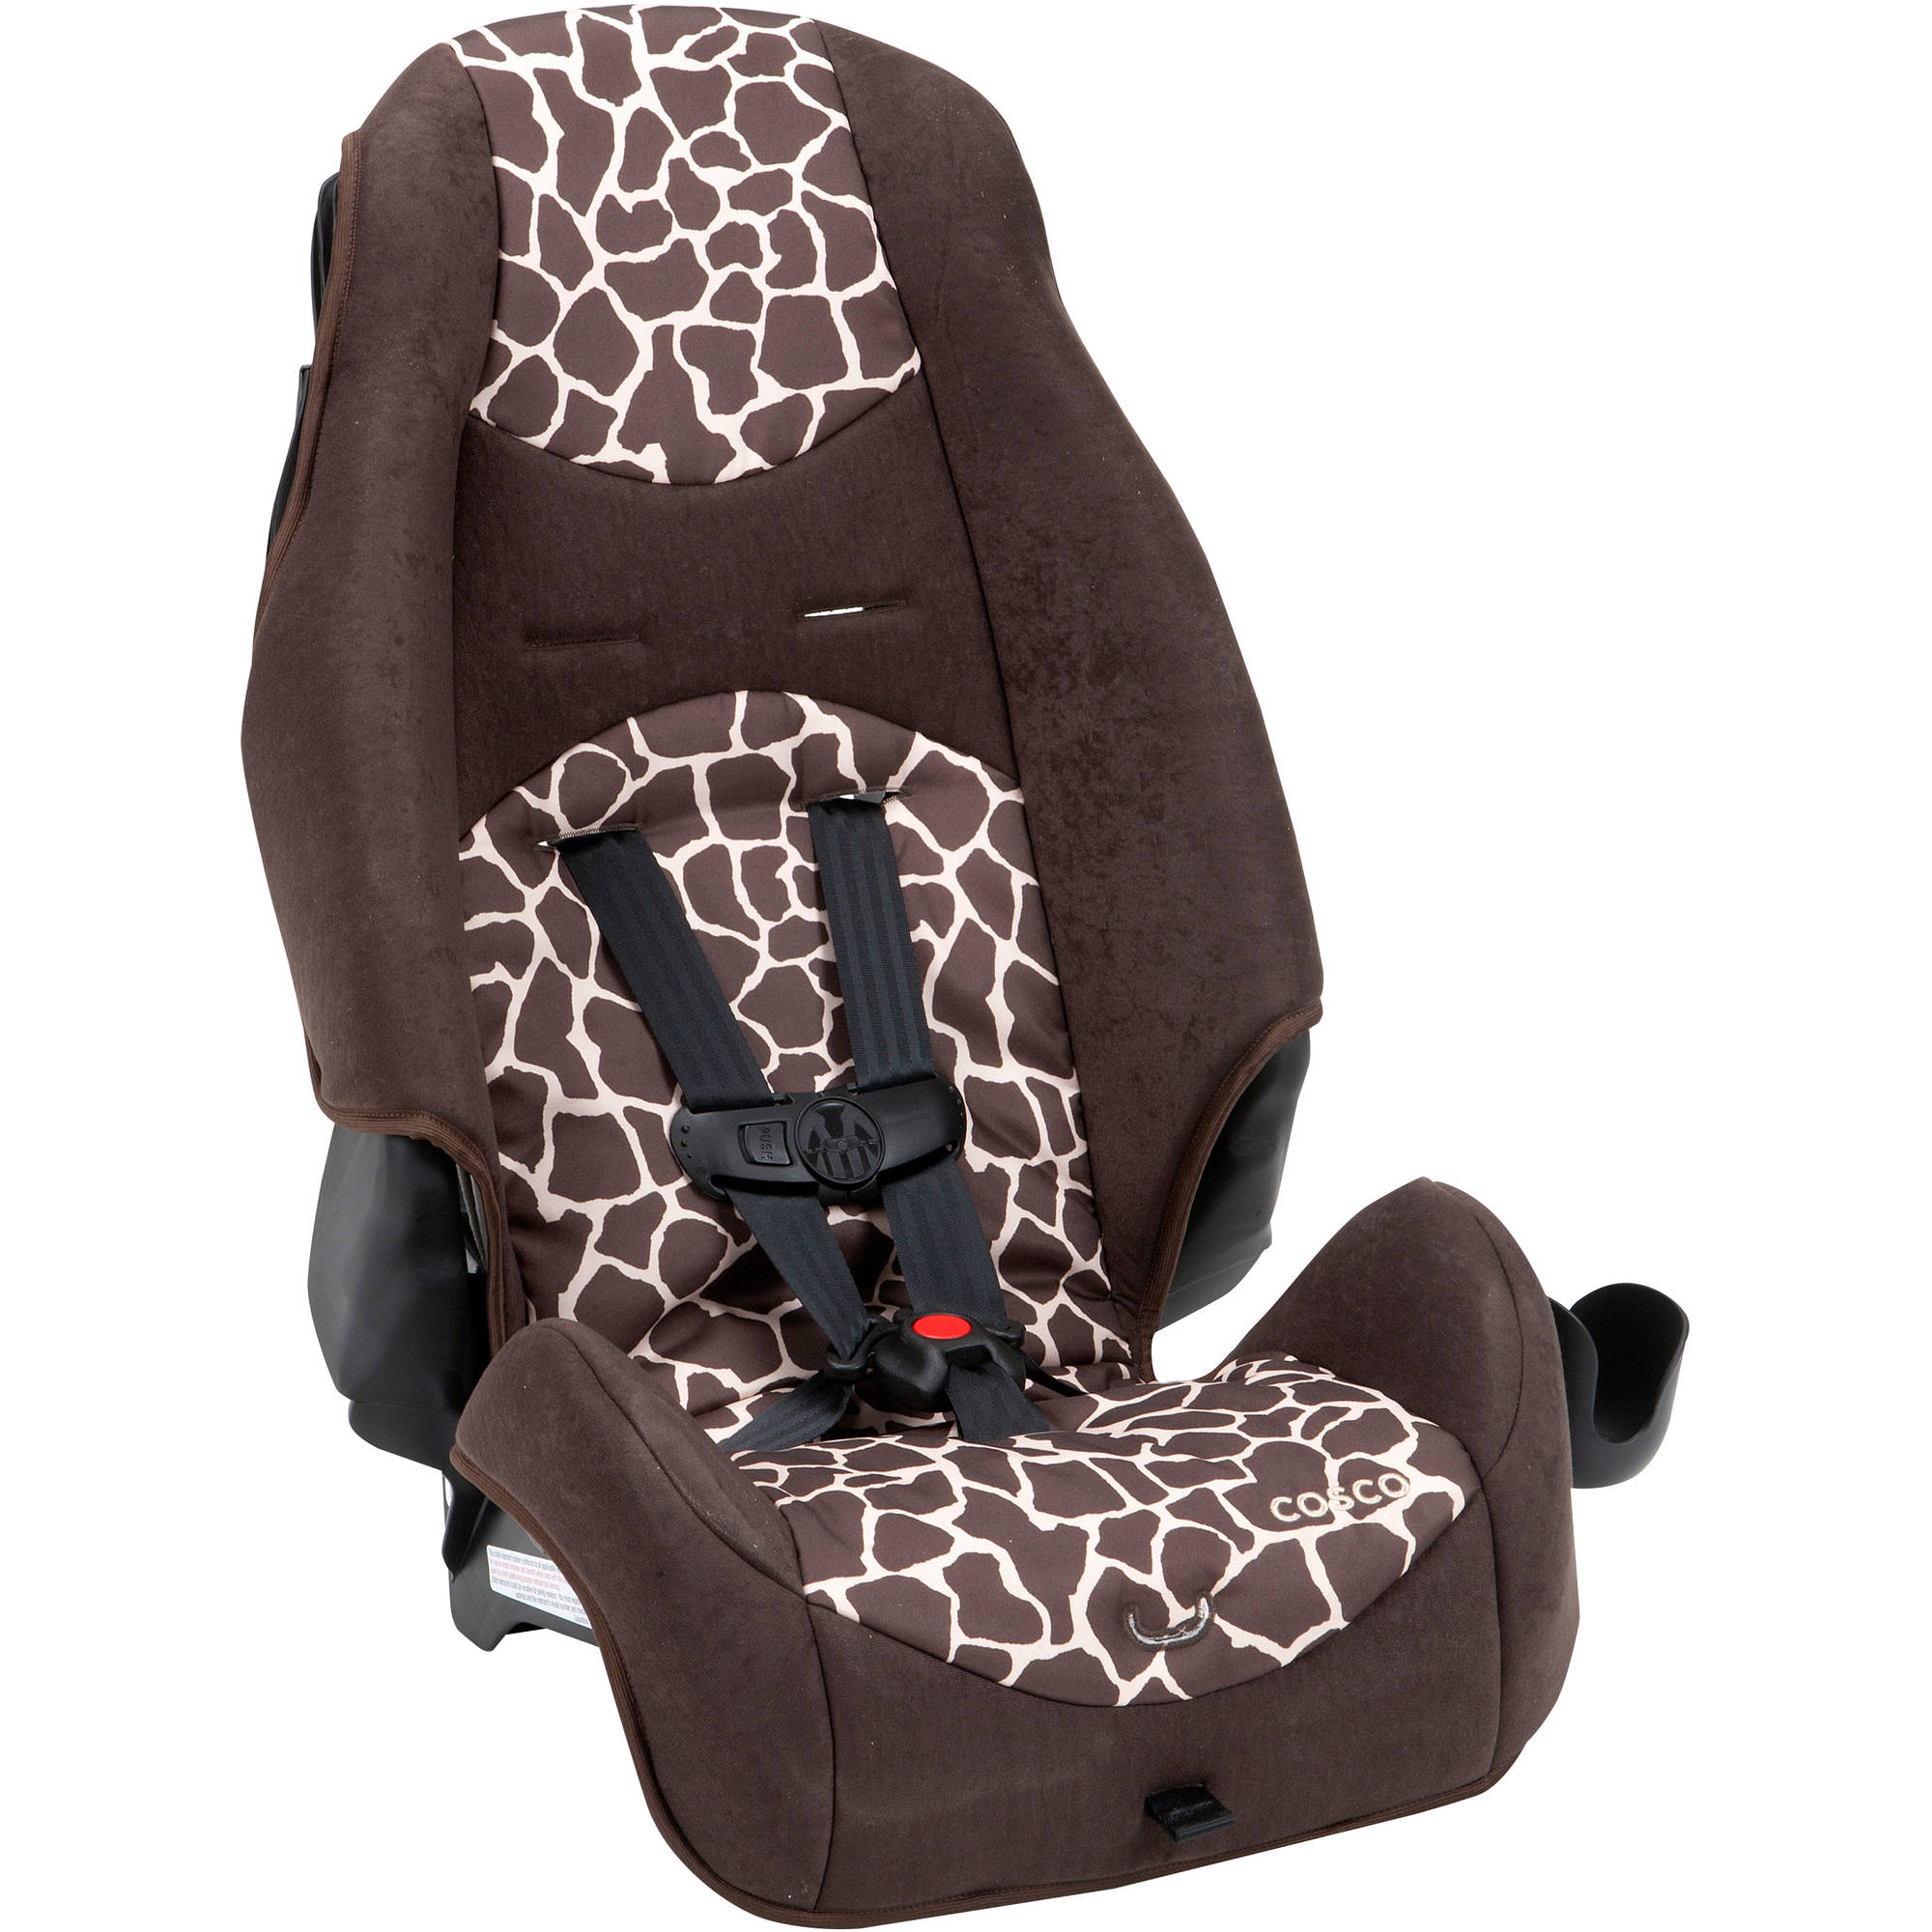 Cosco Highback 2 In 1 Booster Car Seat Choose Your